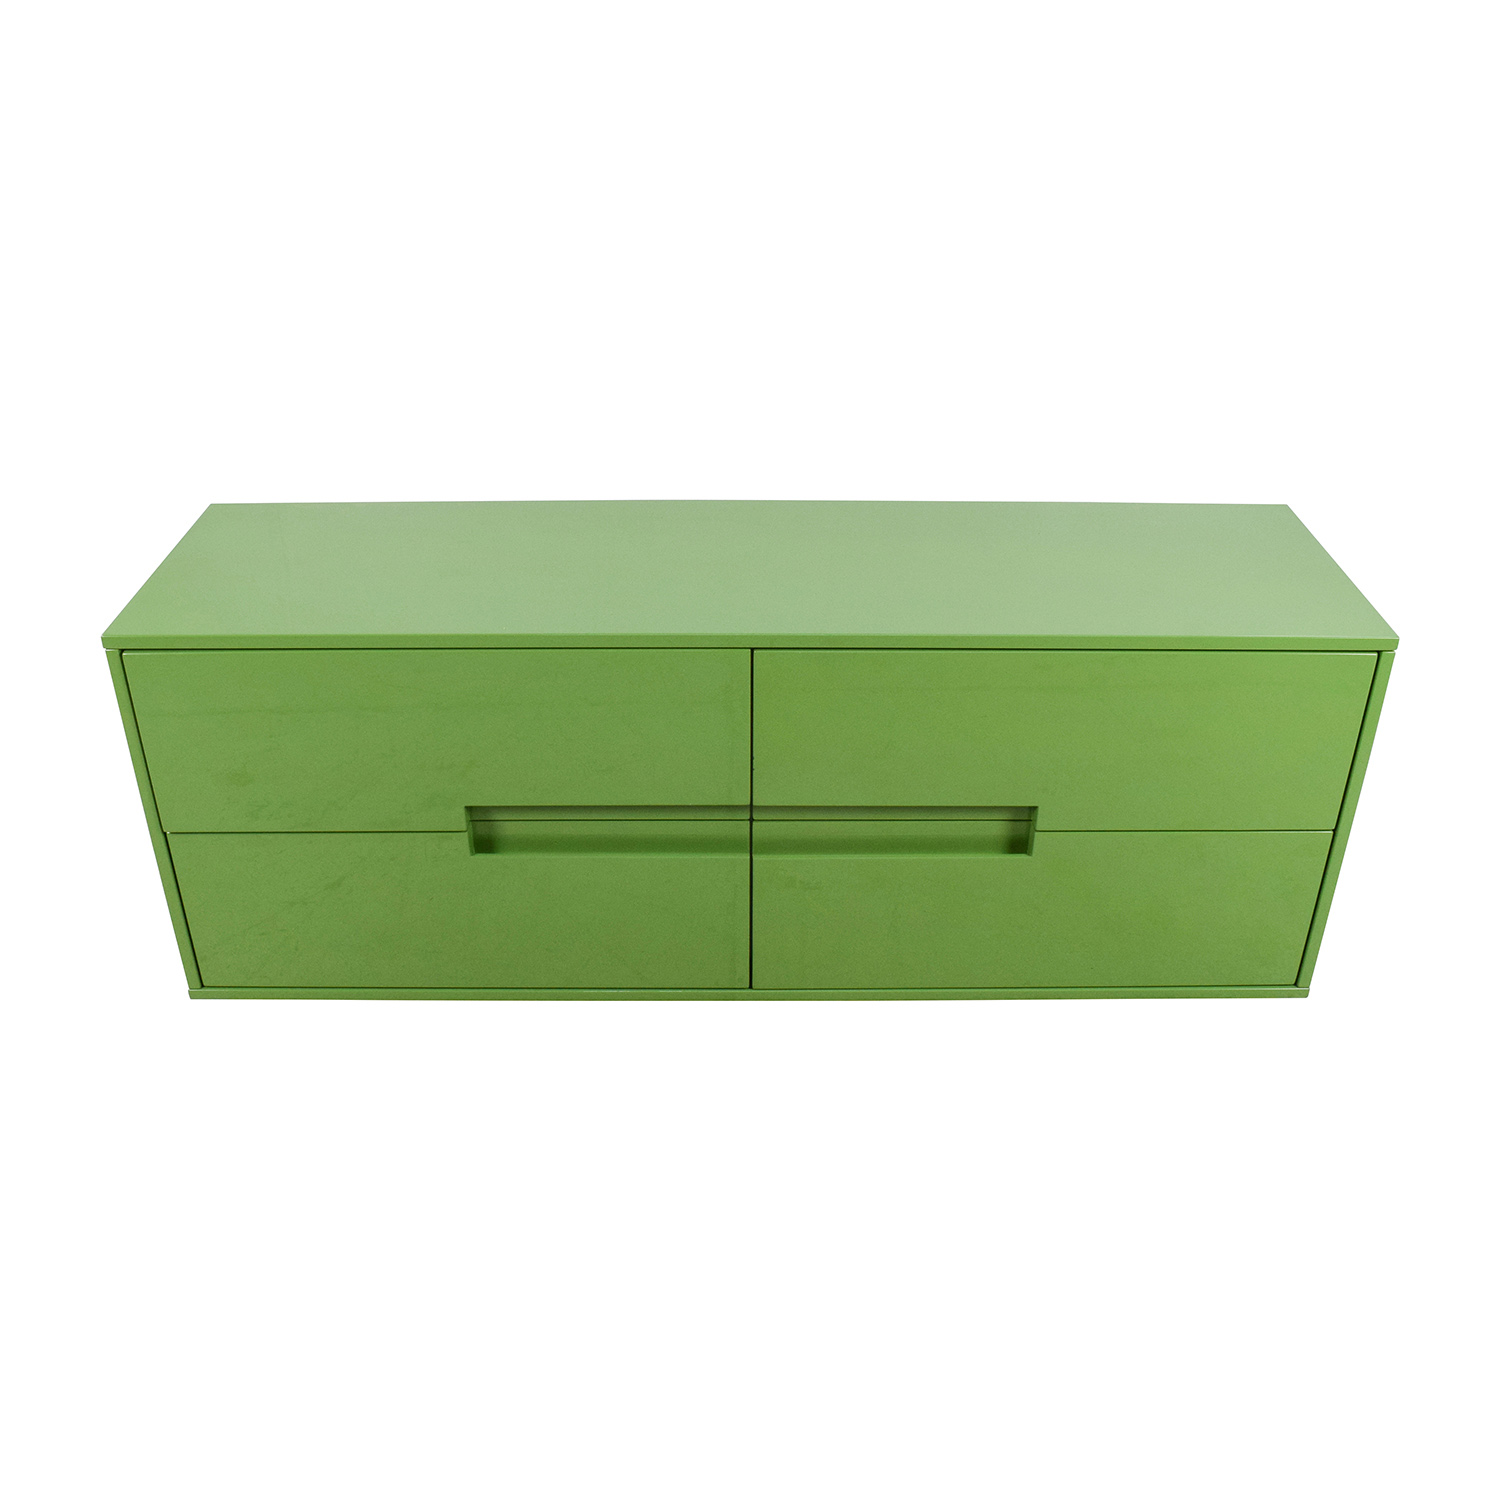 CB2 CB2 Latitude Low Dresser 4 Drawer / Storage